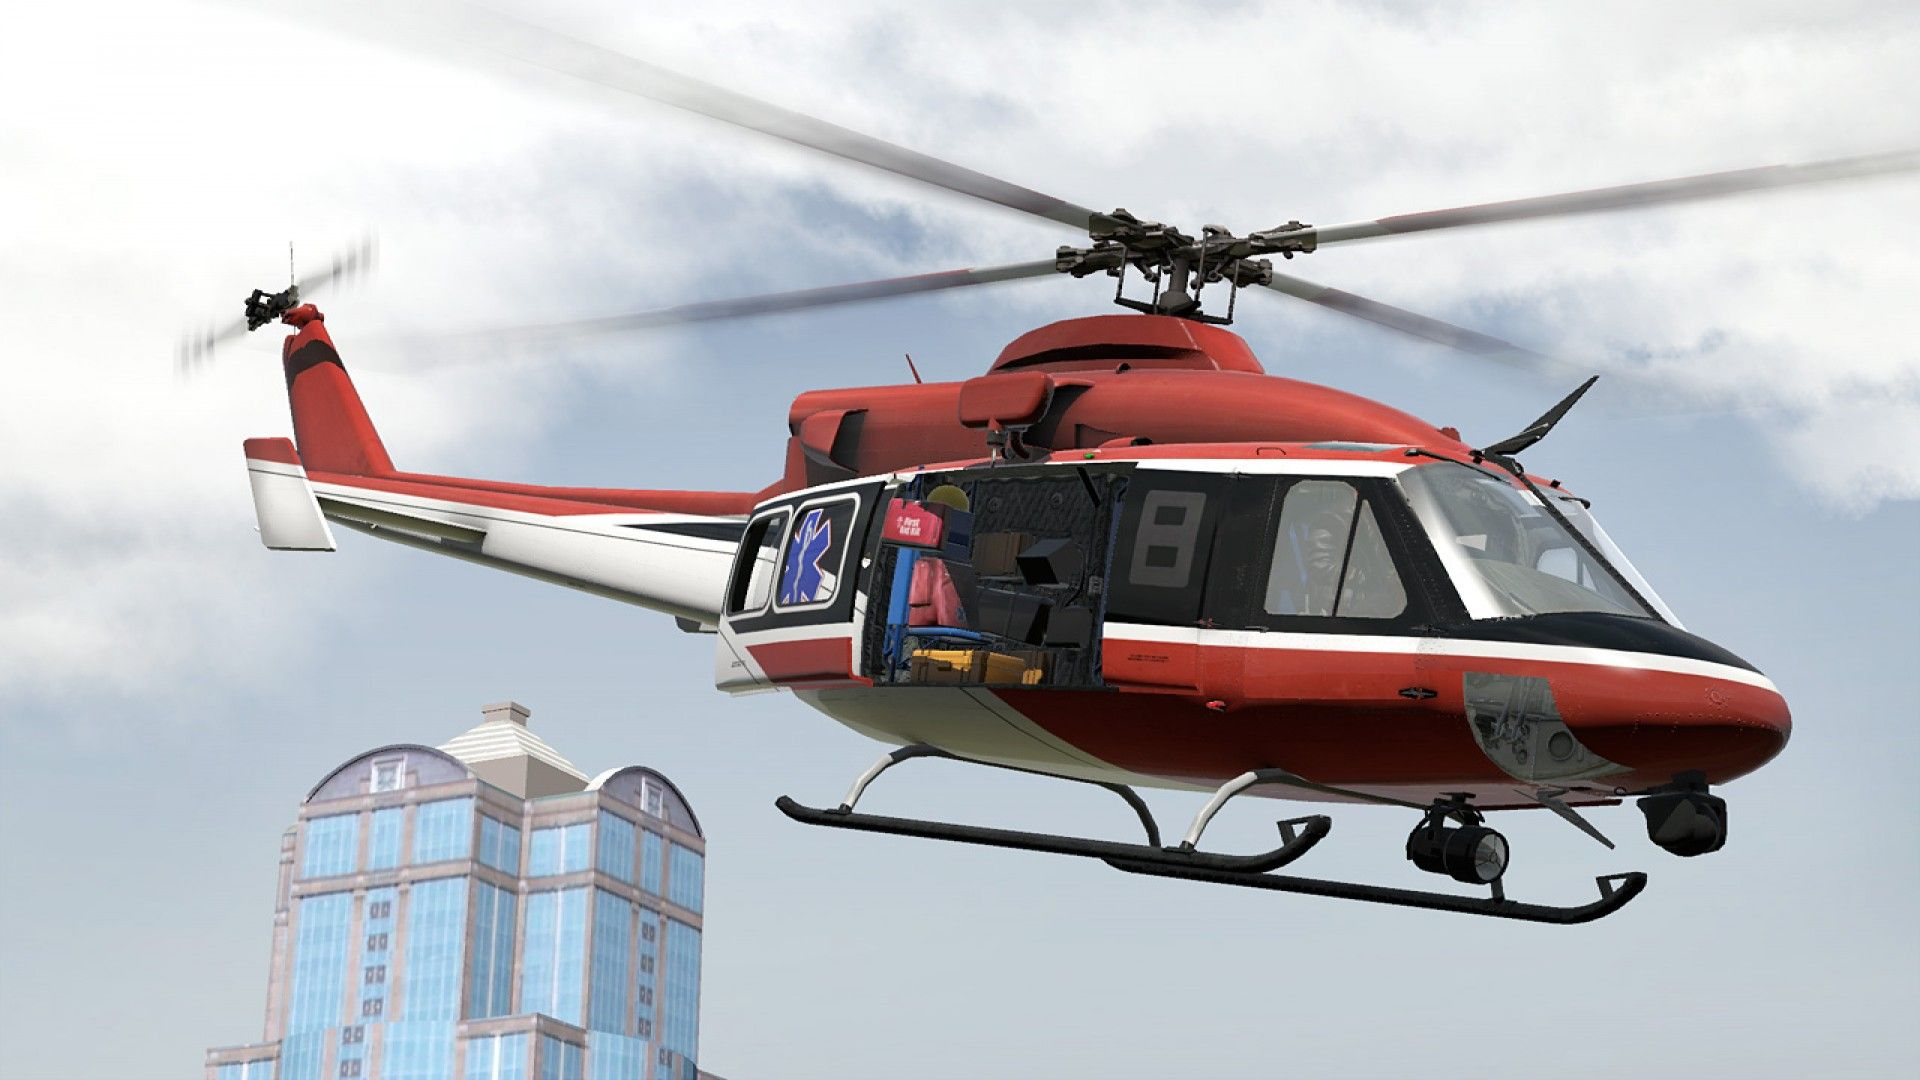 Take On Helicopters, Take On Helicopters Review, Helicopters, Flight, Simulation, Flight Sim, Open World, TrackIR, Co-op, Game, Review, Reviews,